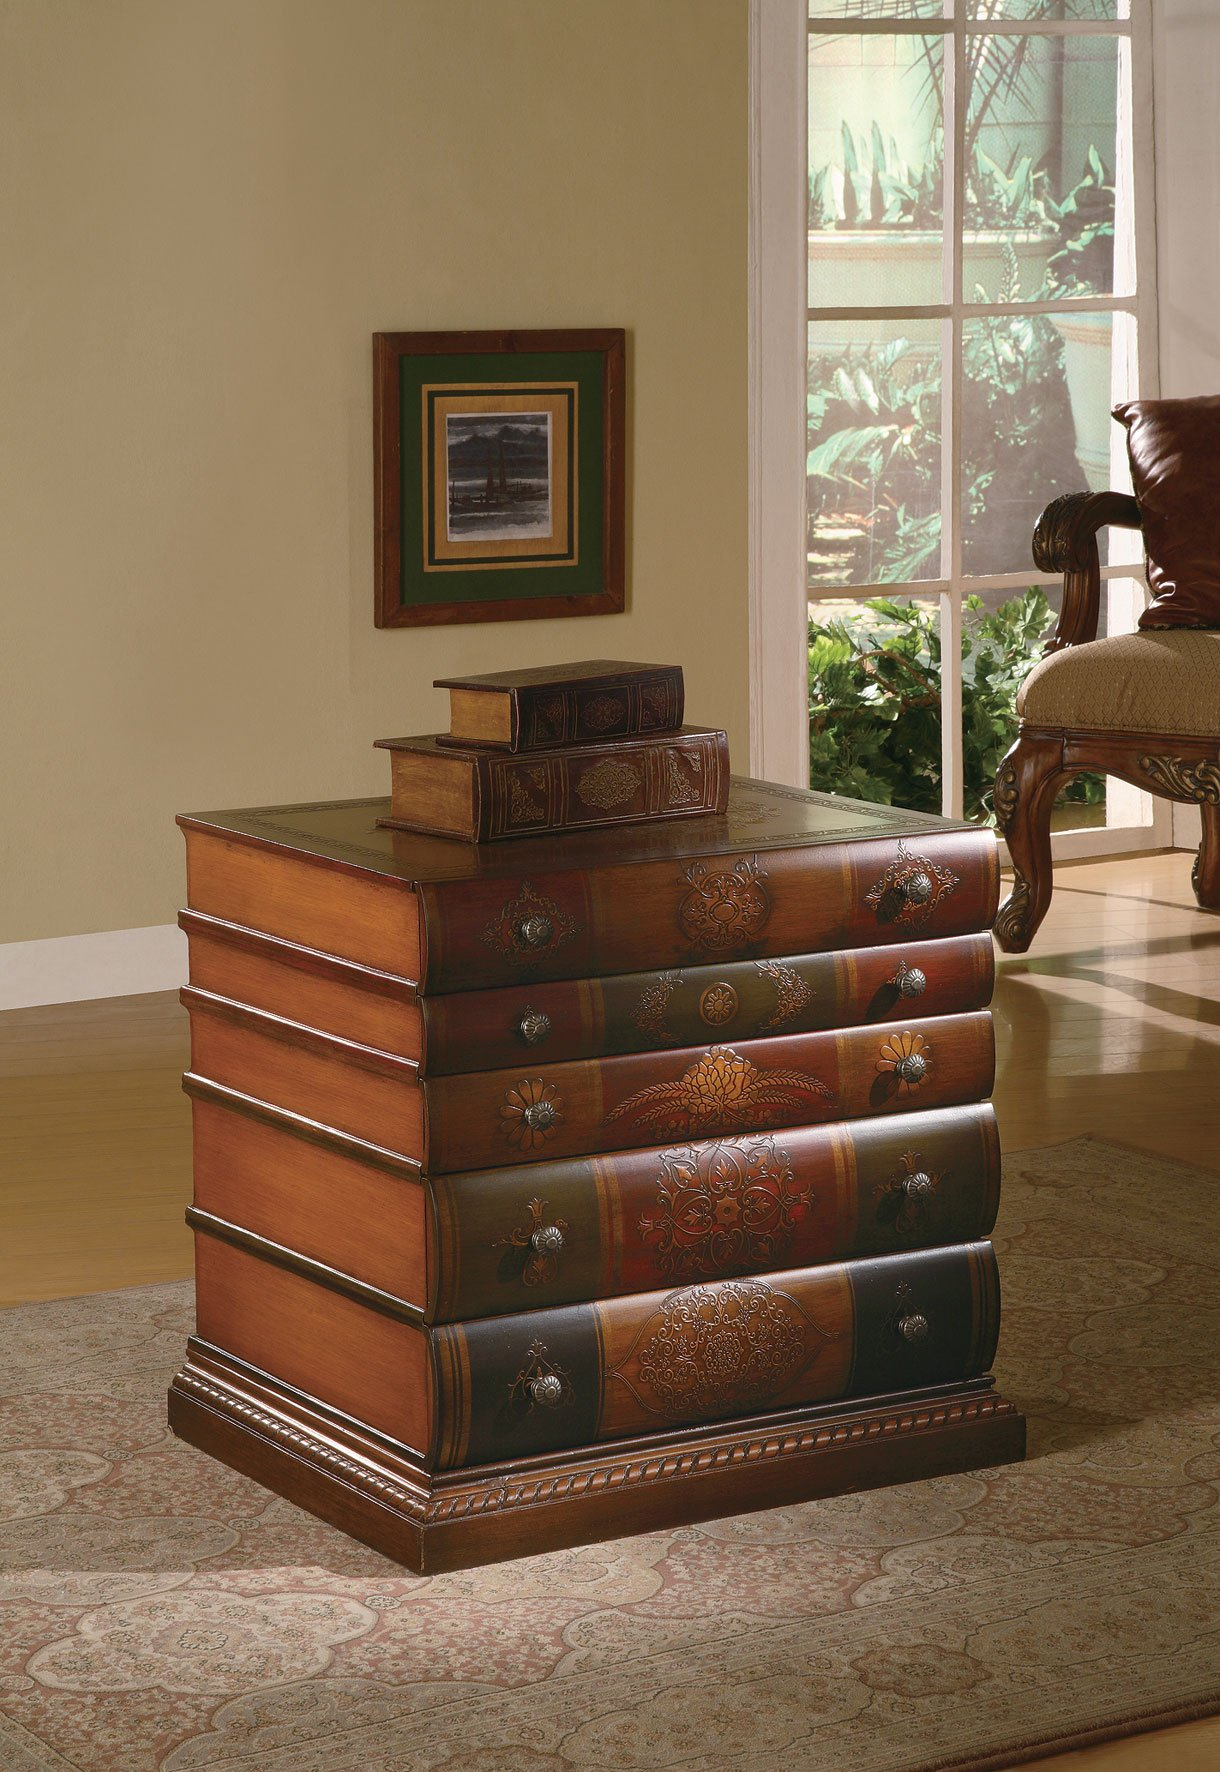 Crestview Collection Cvfyr654 Library 3 Drawer Chest Book